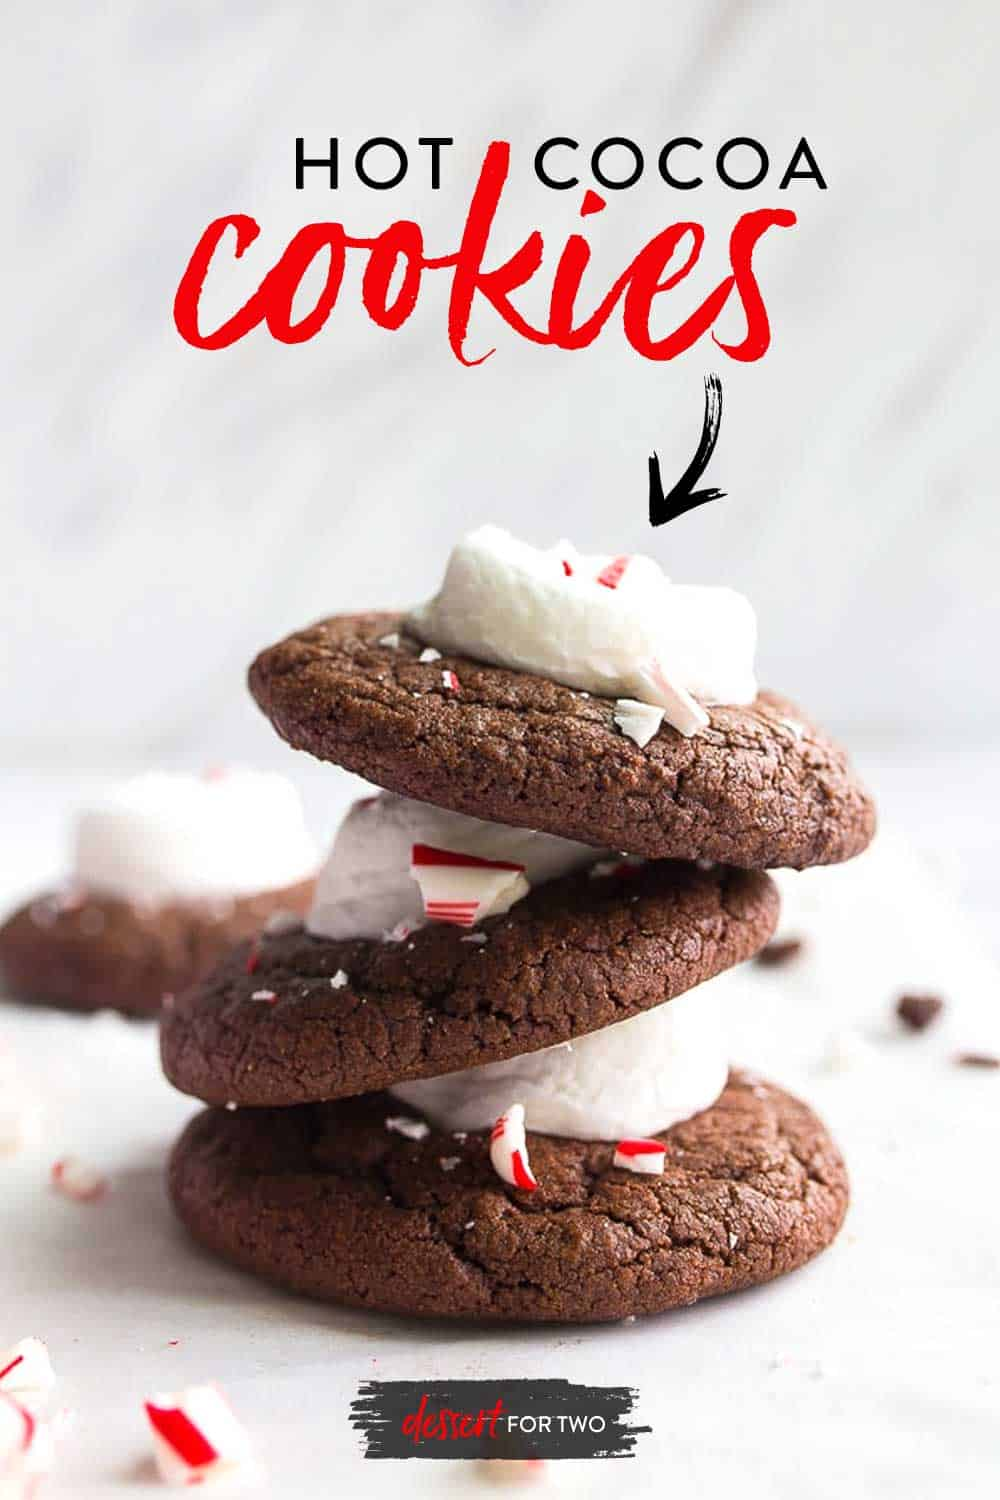 Hot cocoa cookies with marshmallows and candy canes. One dozen hot chocolate cookies topped with melted marshmallows and crushed peppermints. #christmascookies #hotcocoacookies #hotcocoa #hotchocolate #hotchocolatecookies #marshmallow #candycane #peppermint #chocolatepeppermint #cookiesforSanta